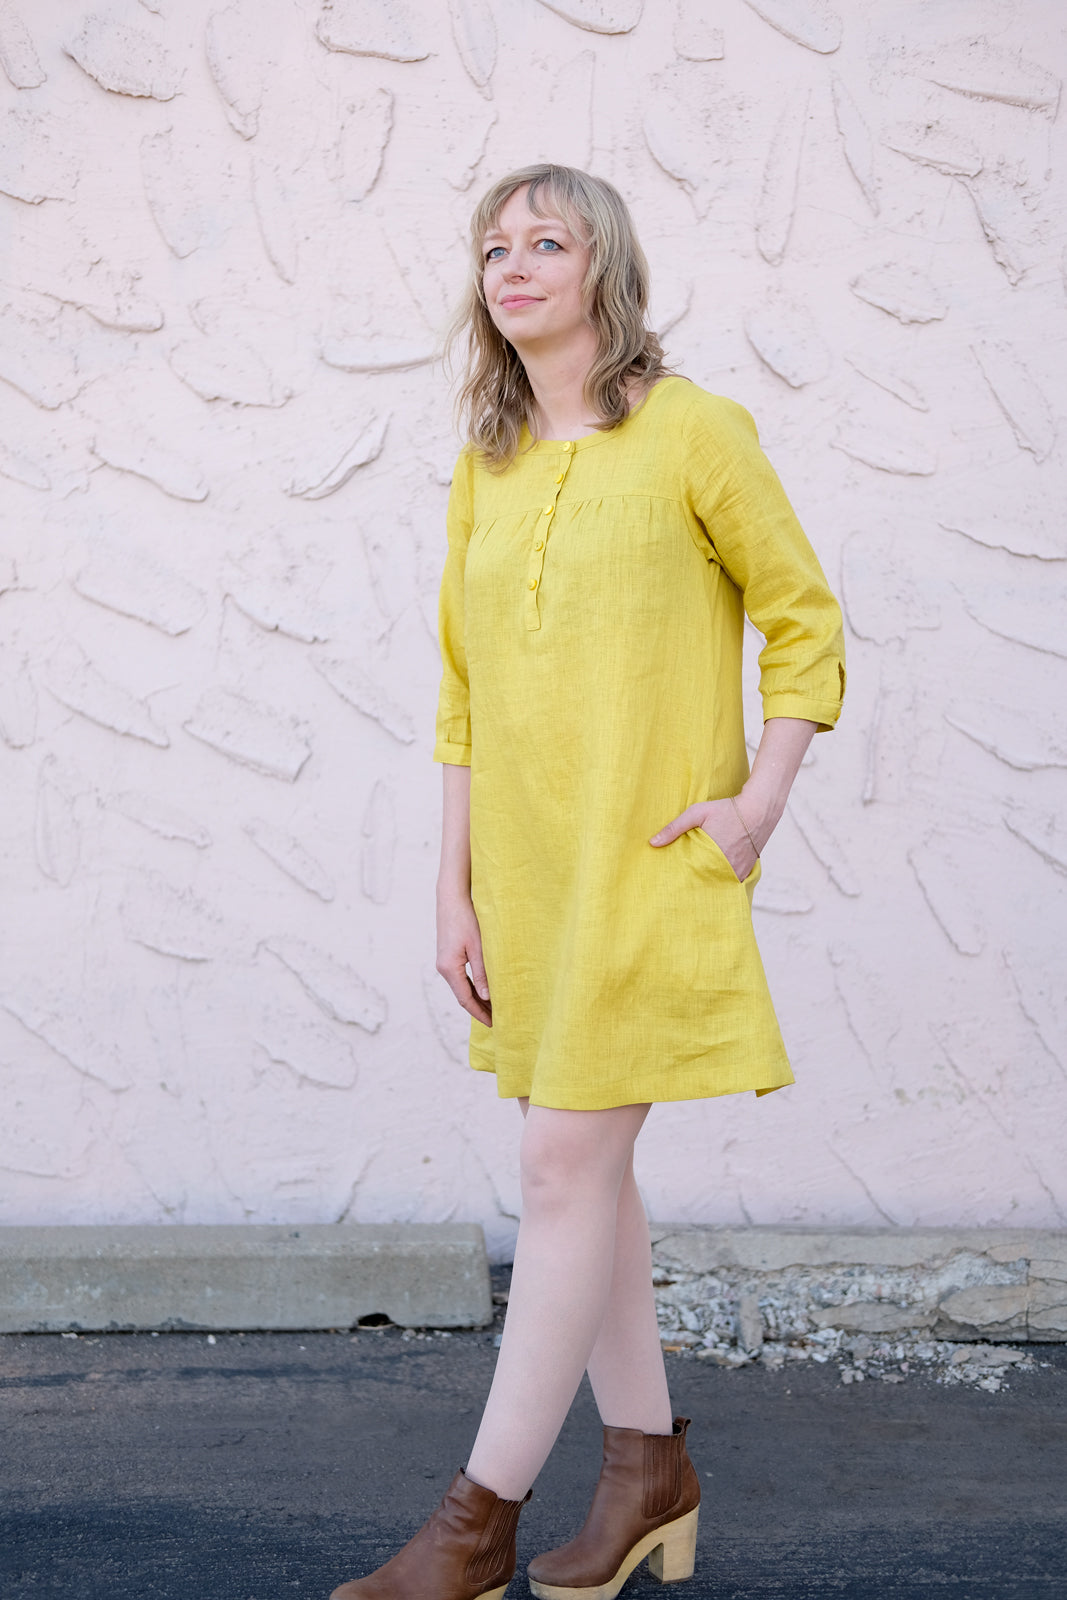 Amber in her citrus colored linen Brome with her hand in the pocket